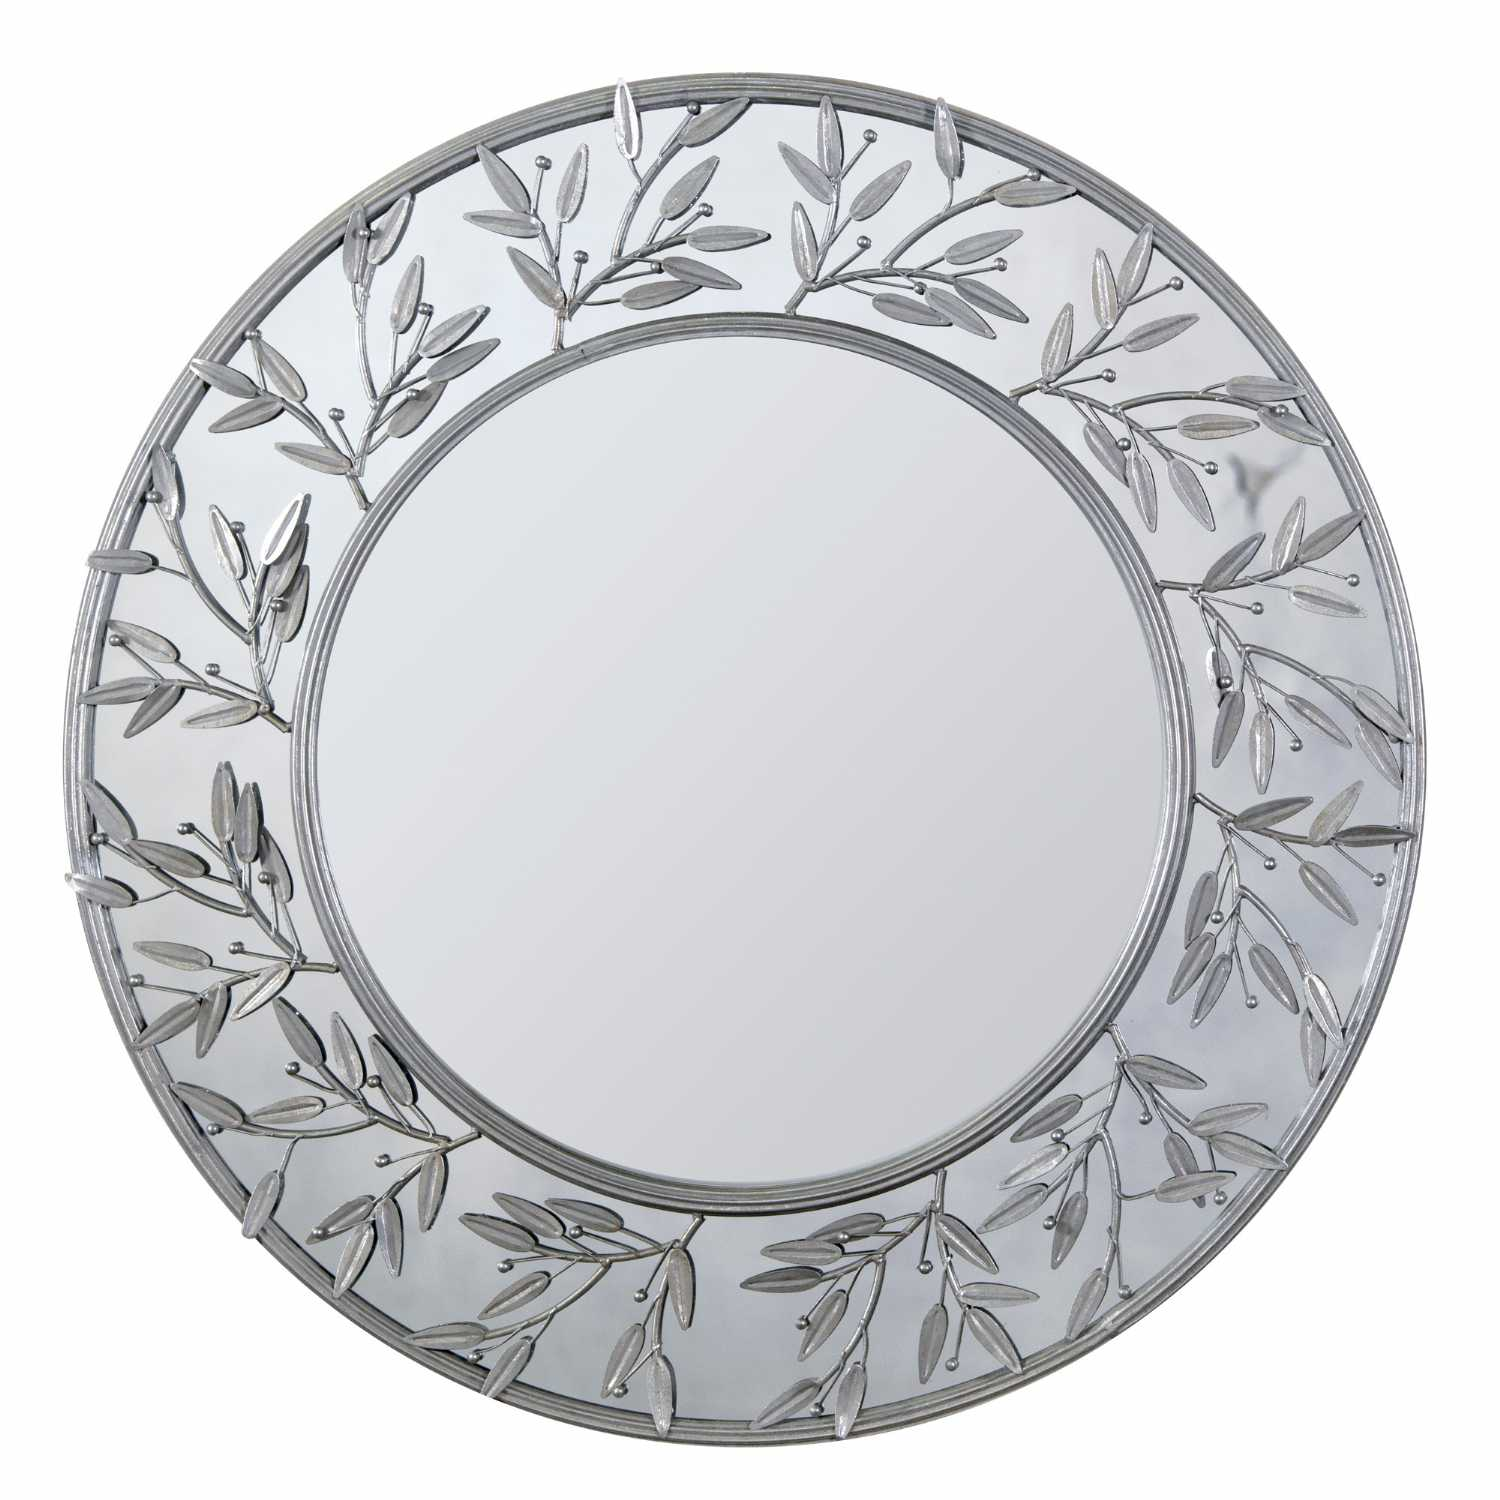 Modern round decorative metal framed wall mirror Round framed mirror